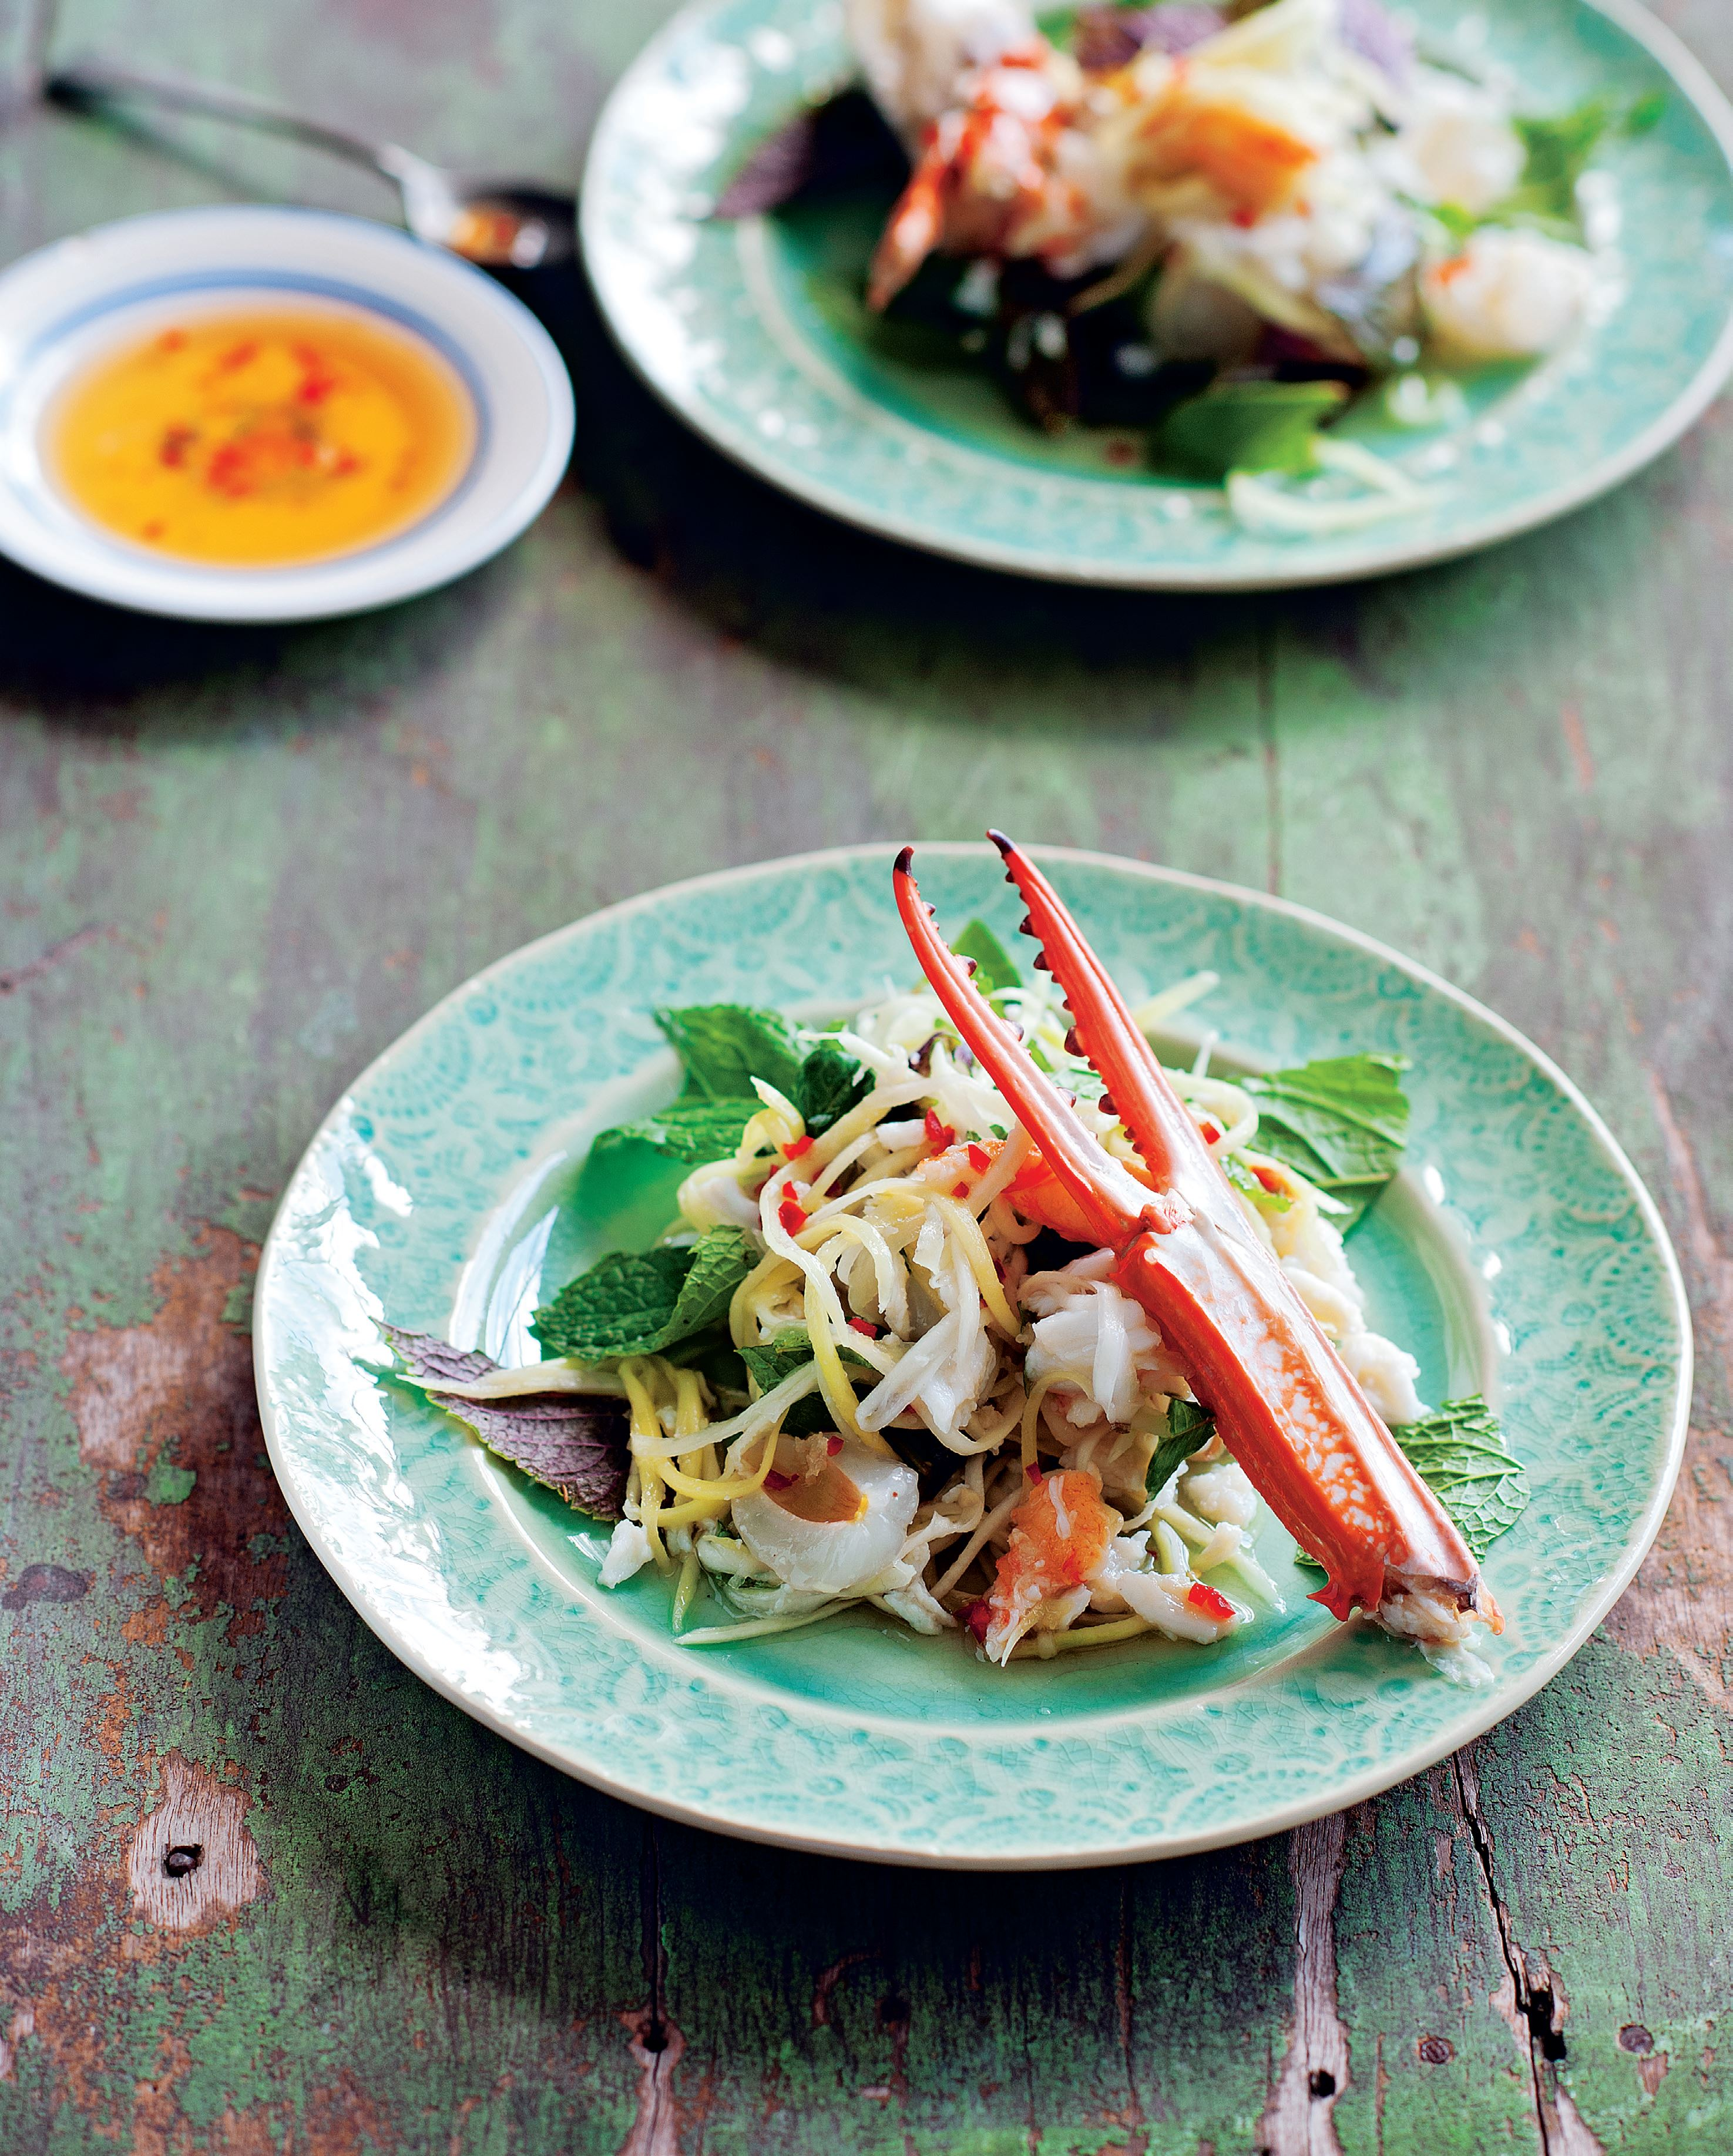 Green mango salad with crab